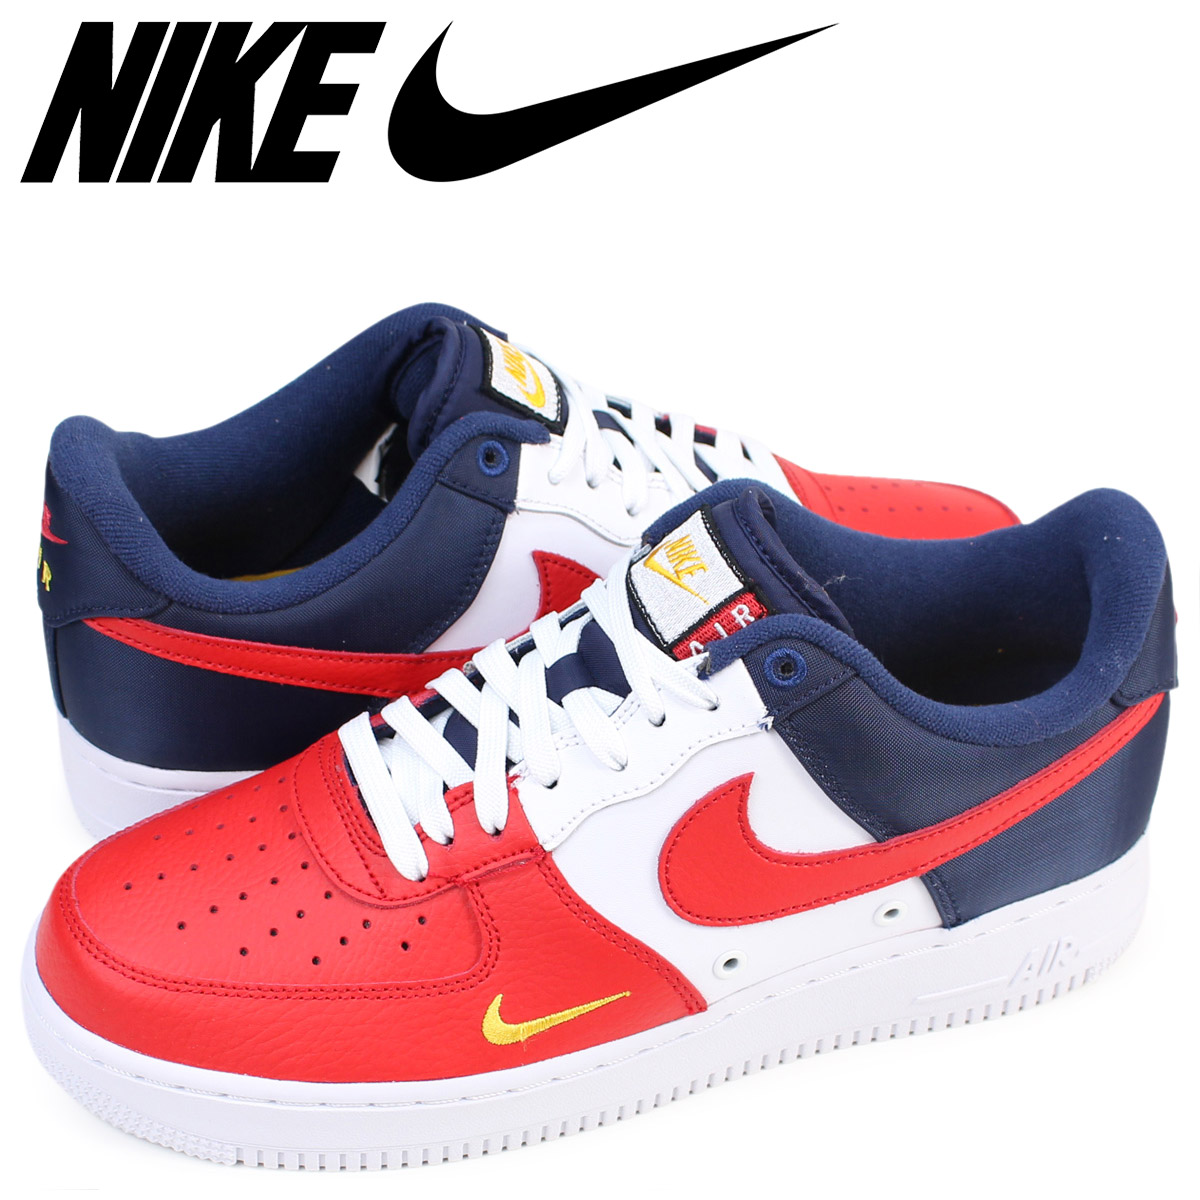 d50f787426cf ALLSPORTS  NIKE Nike air force 1 sneakers AIR FORCE 1 LOW 07 LV8 men low  823